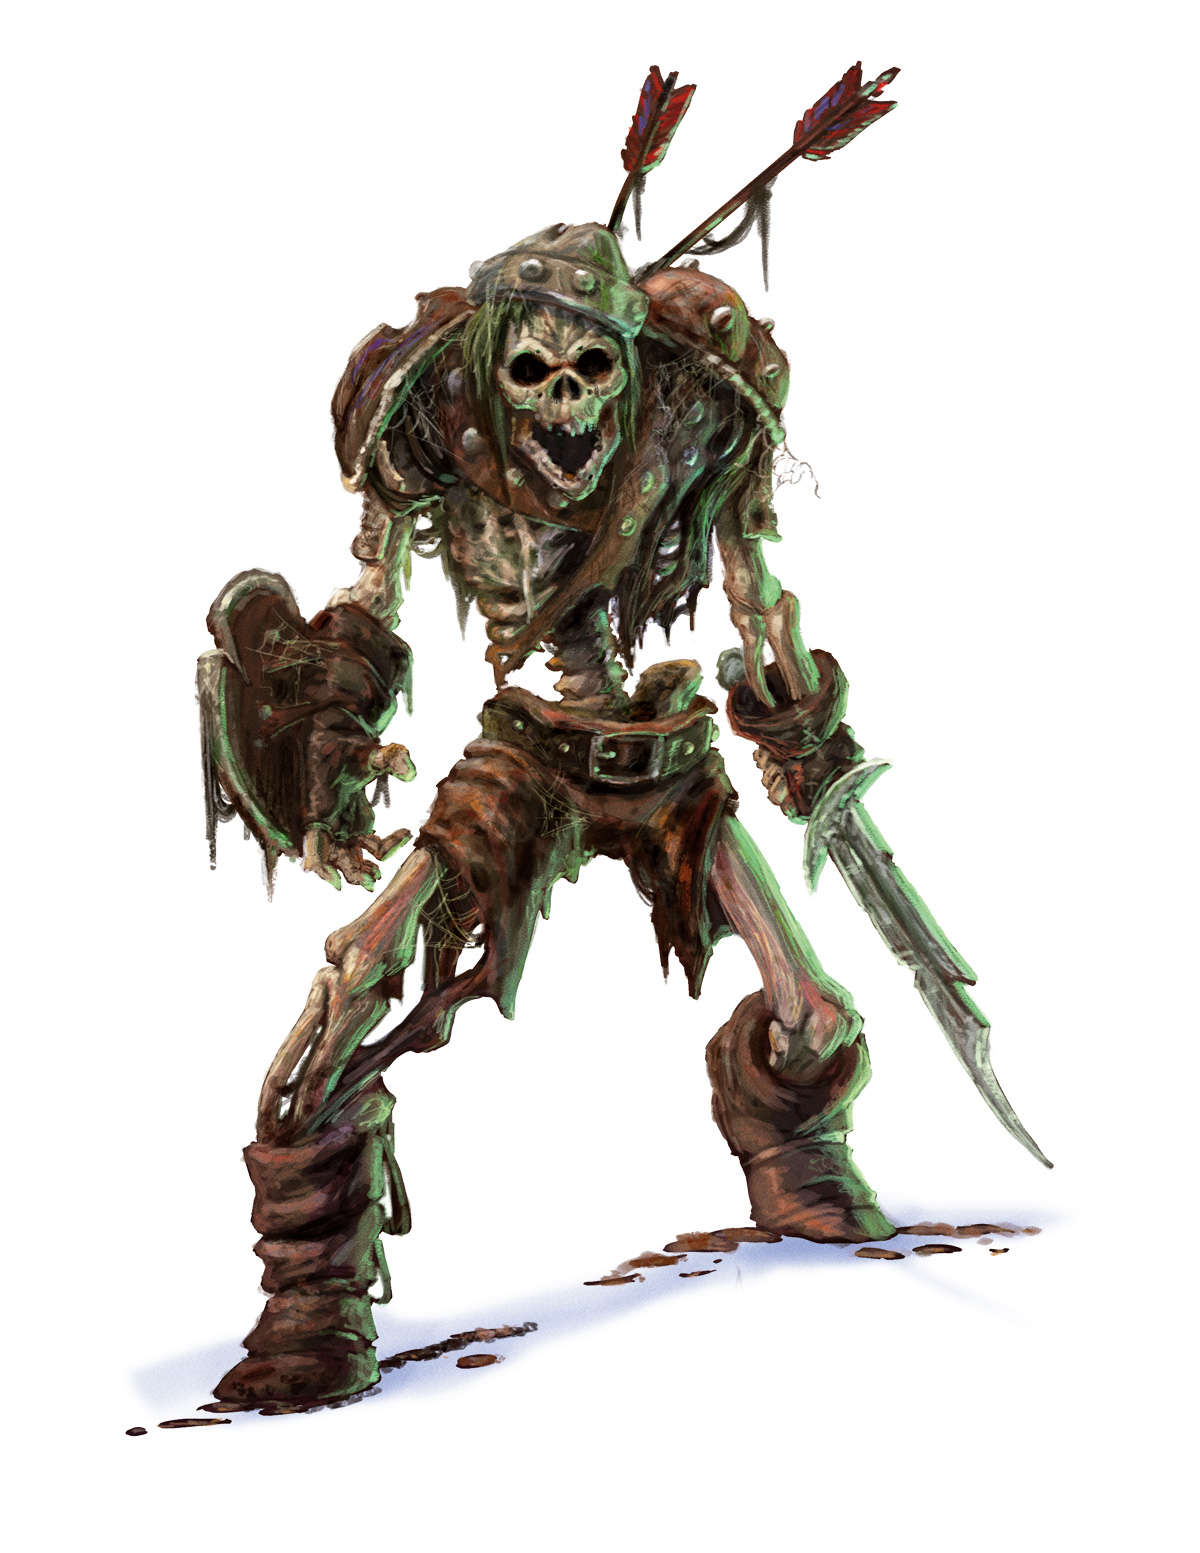 Skeleton | Forgotten Realms Wiki | Fandom